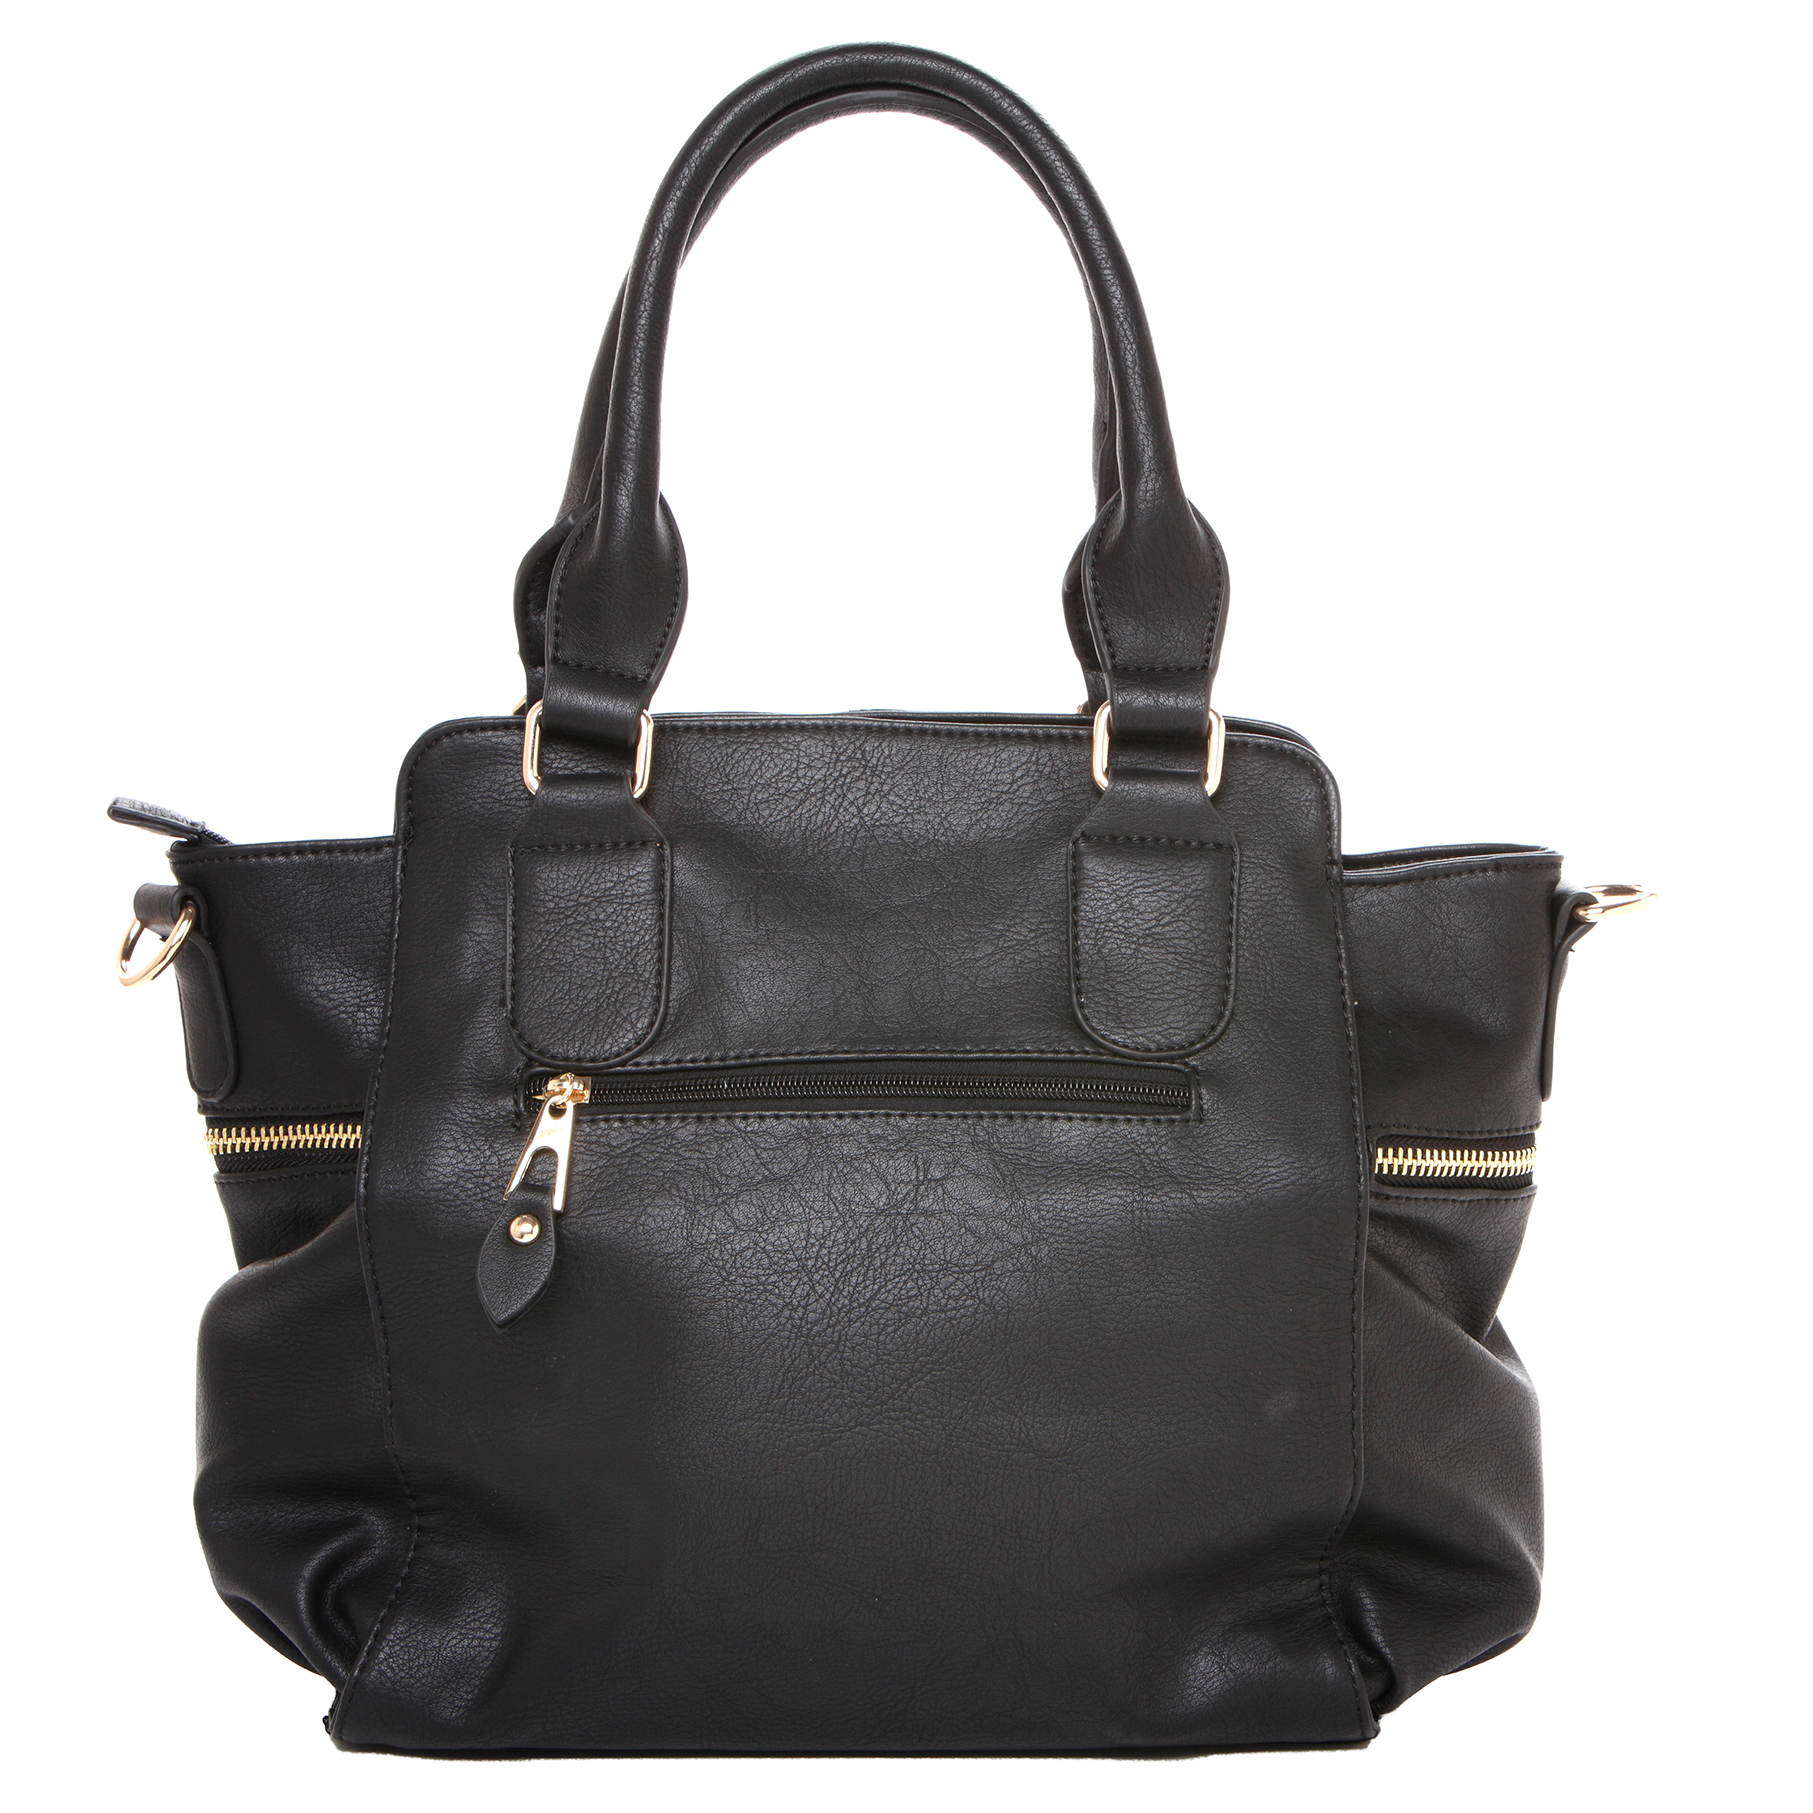 NORI Black Top Handle Office Tote Style Handbag back